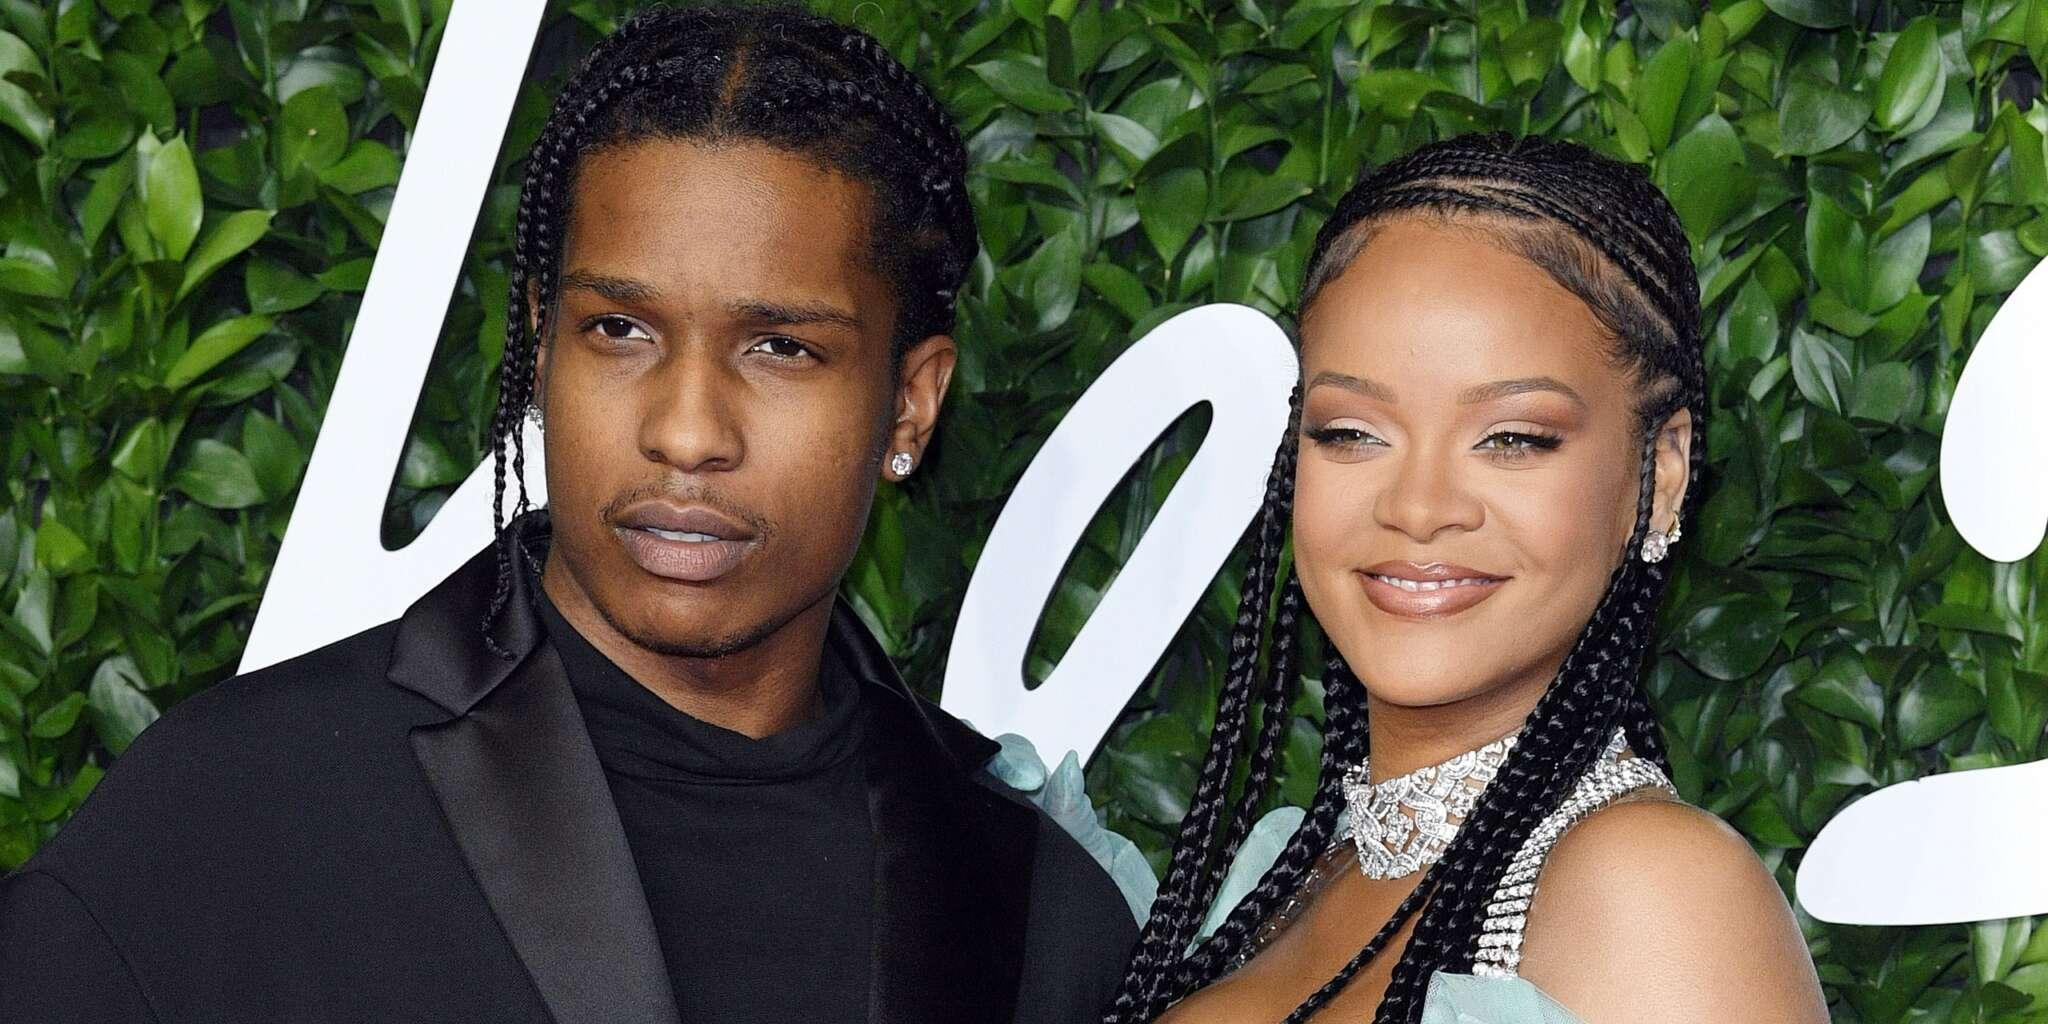 Rihanna And ASAP Rocky - Here's How Her Loved Ones Reacted To Rihanna Bringing Her New BF Home For The Holidays!